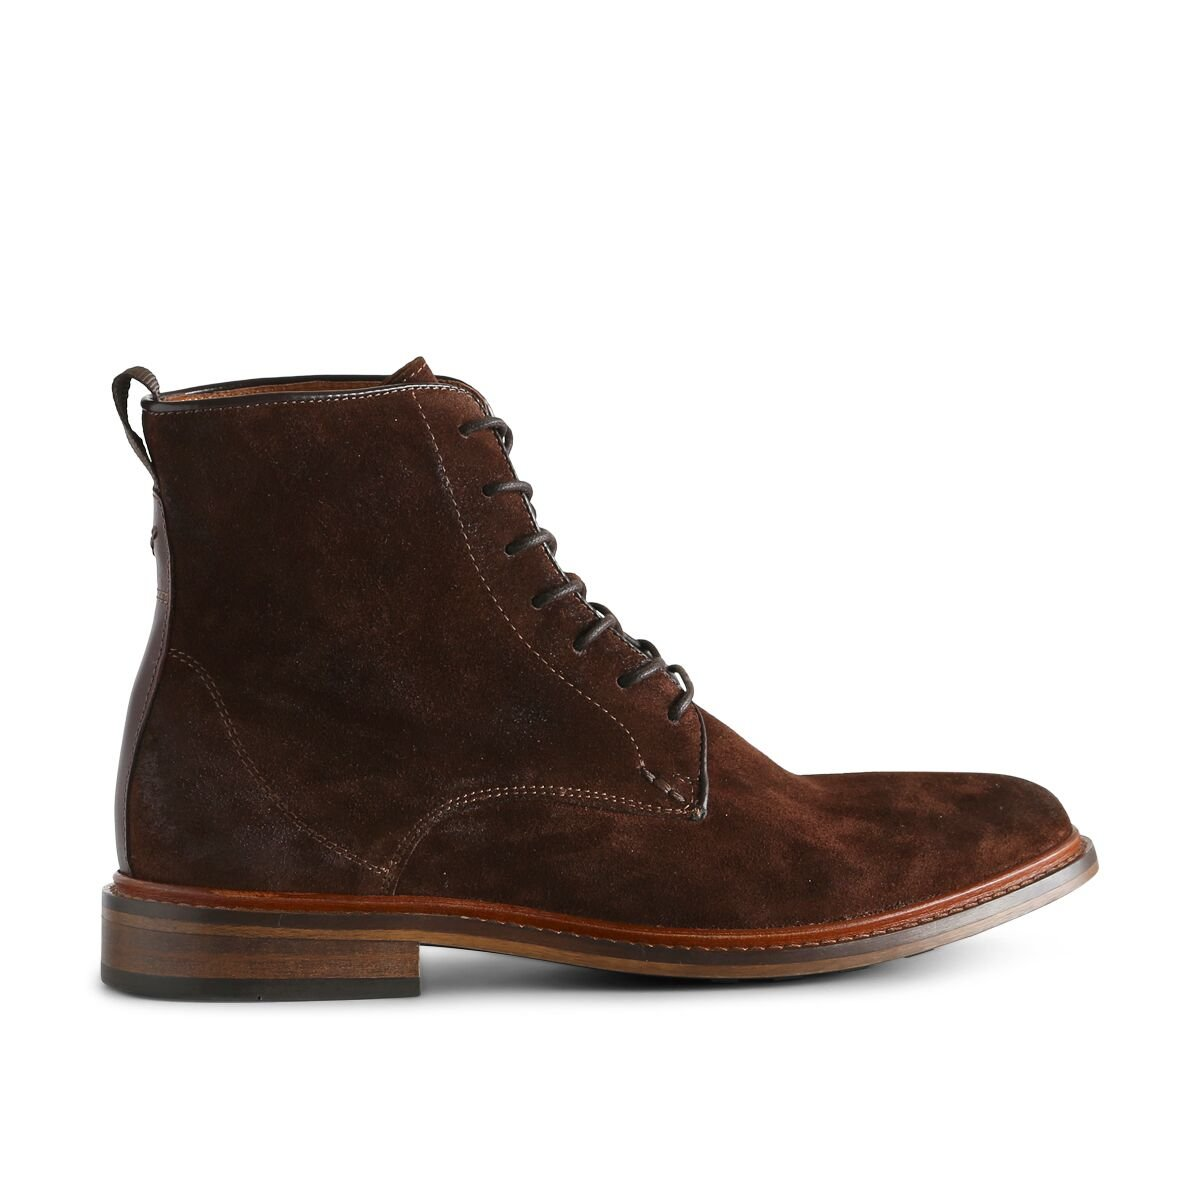 TALLA 44 EU. SHOE THE BEAR Ned S, Botas Clasicas para Hombre